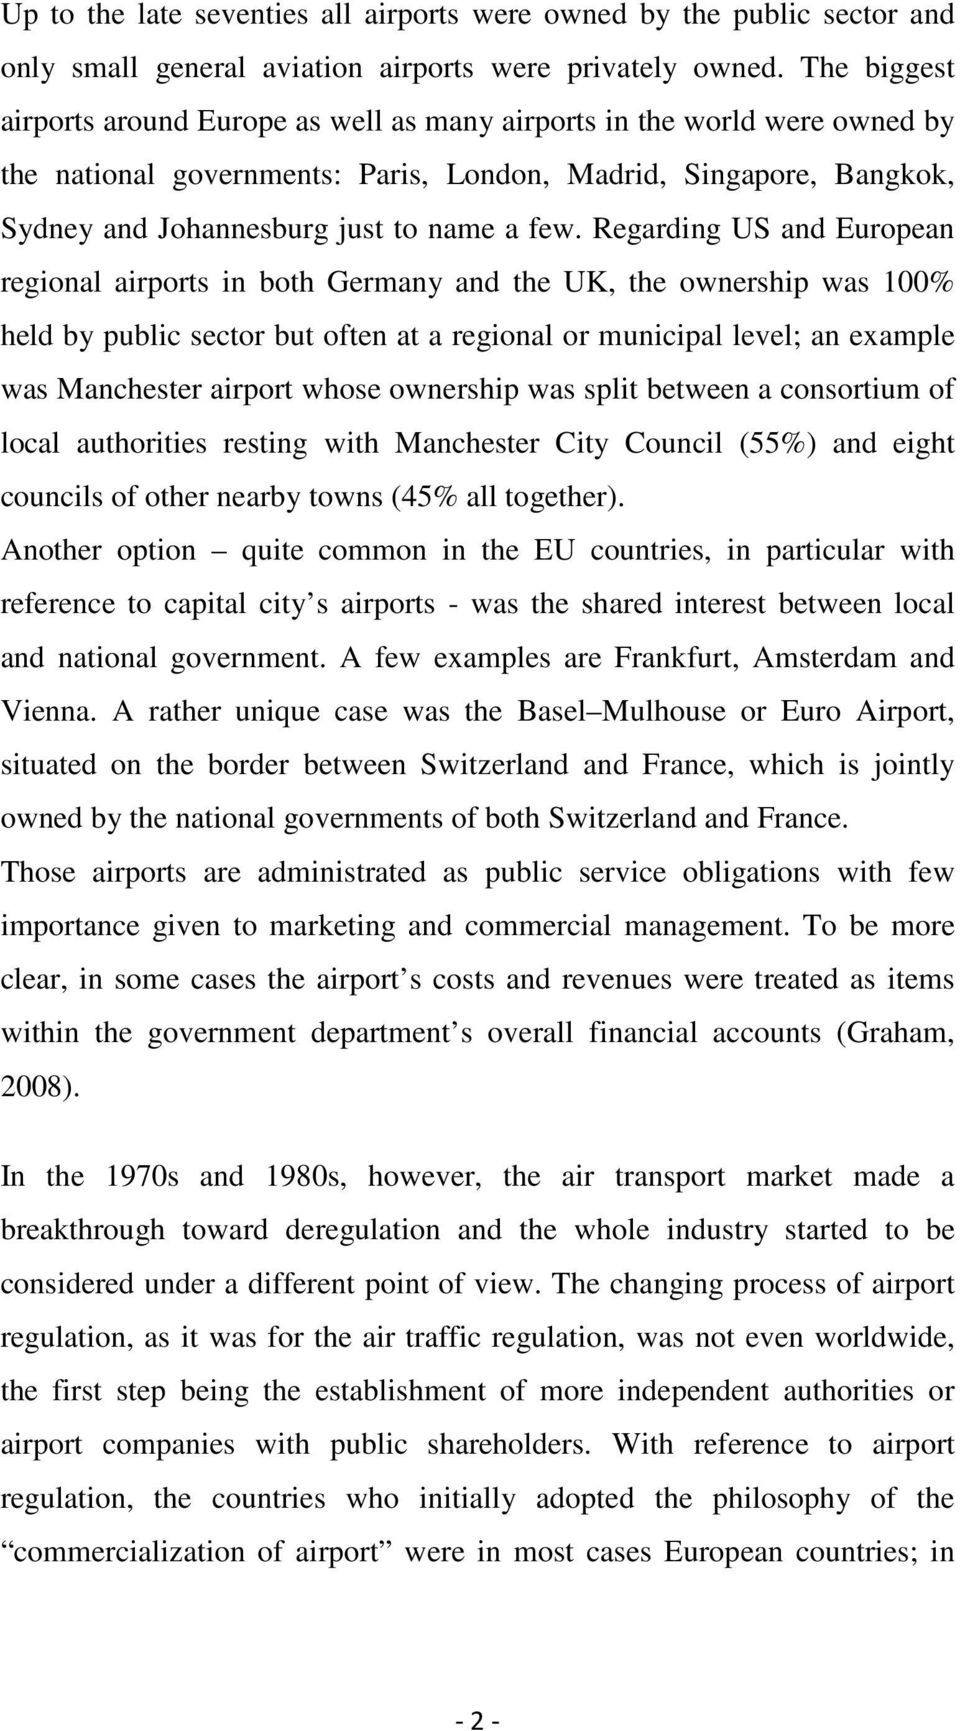 Regarding US and European regional airports in both Germany and the UK, the ownership was 100% held by public sector but often at a regional or municipal level; an example was Manchester airport